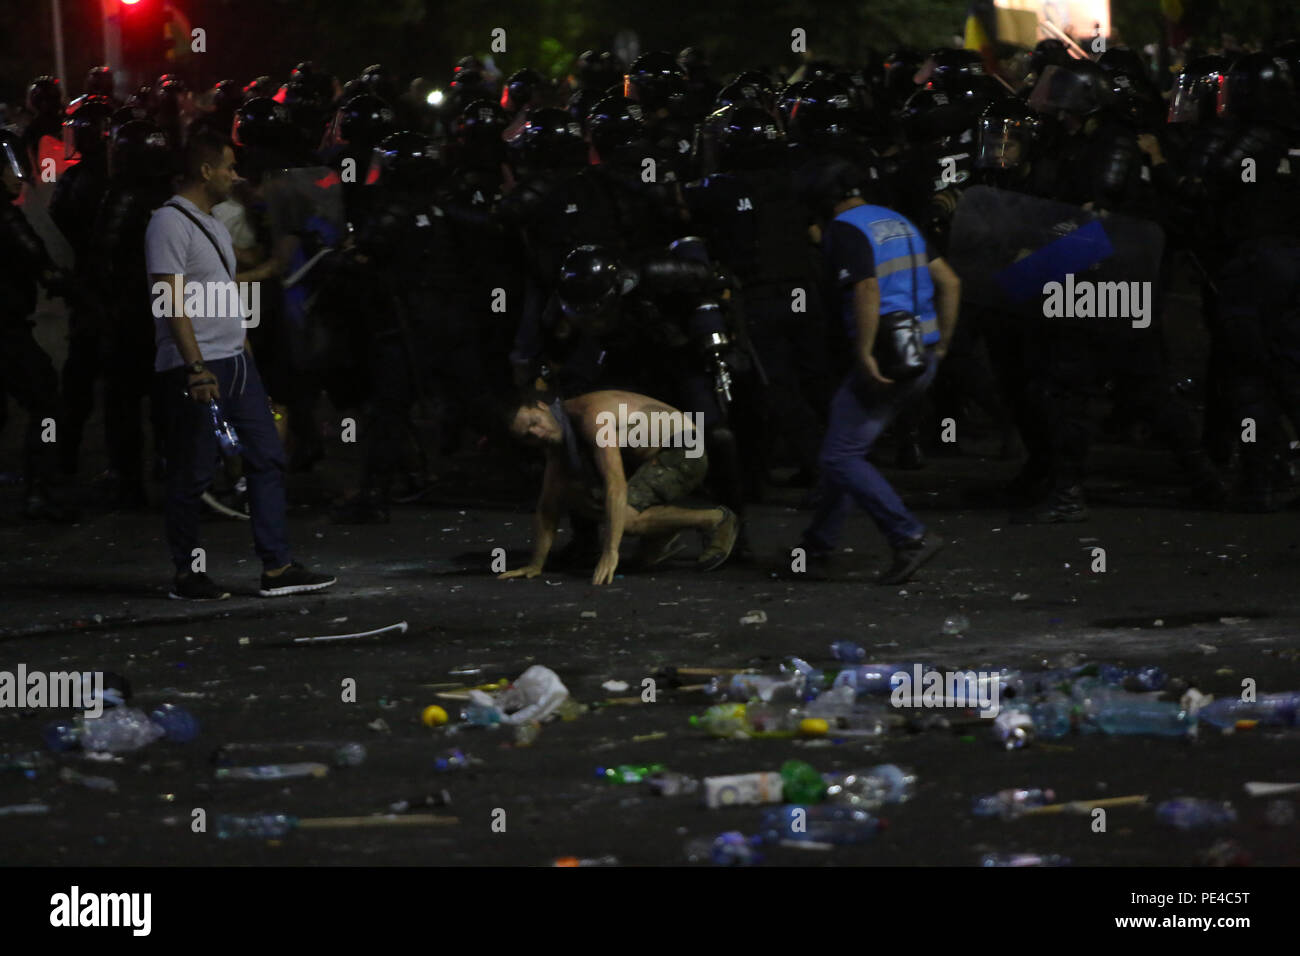 Bucharest, Romania - August 10, 2018: Gendarmes are arresting a violent football supporter during  the violent anti-government protest in Bucharest. - Stock Image